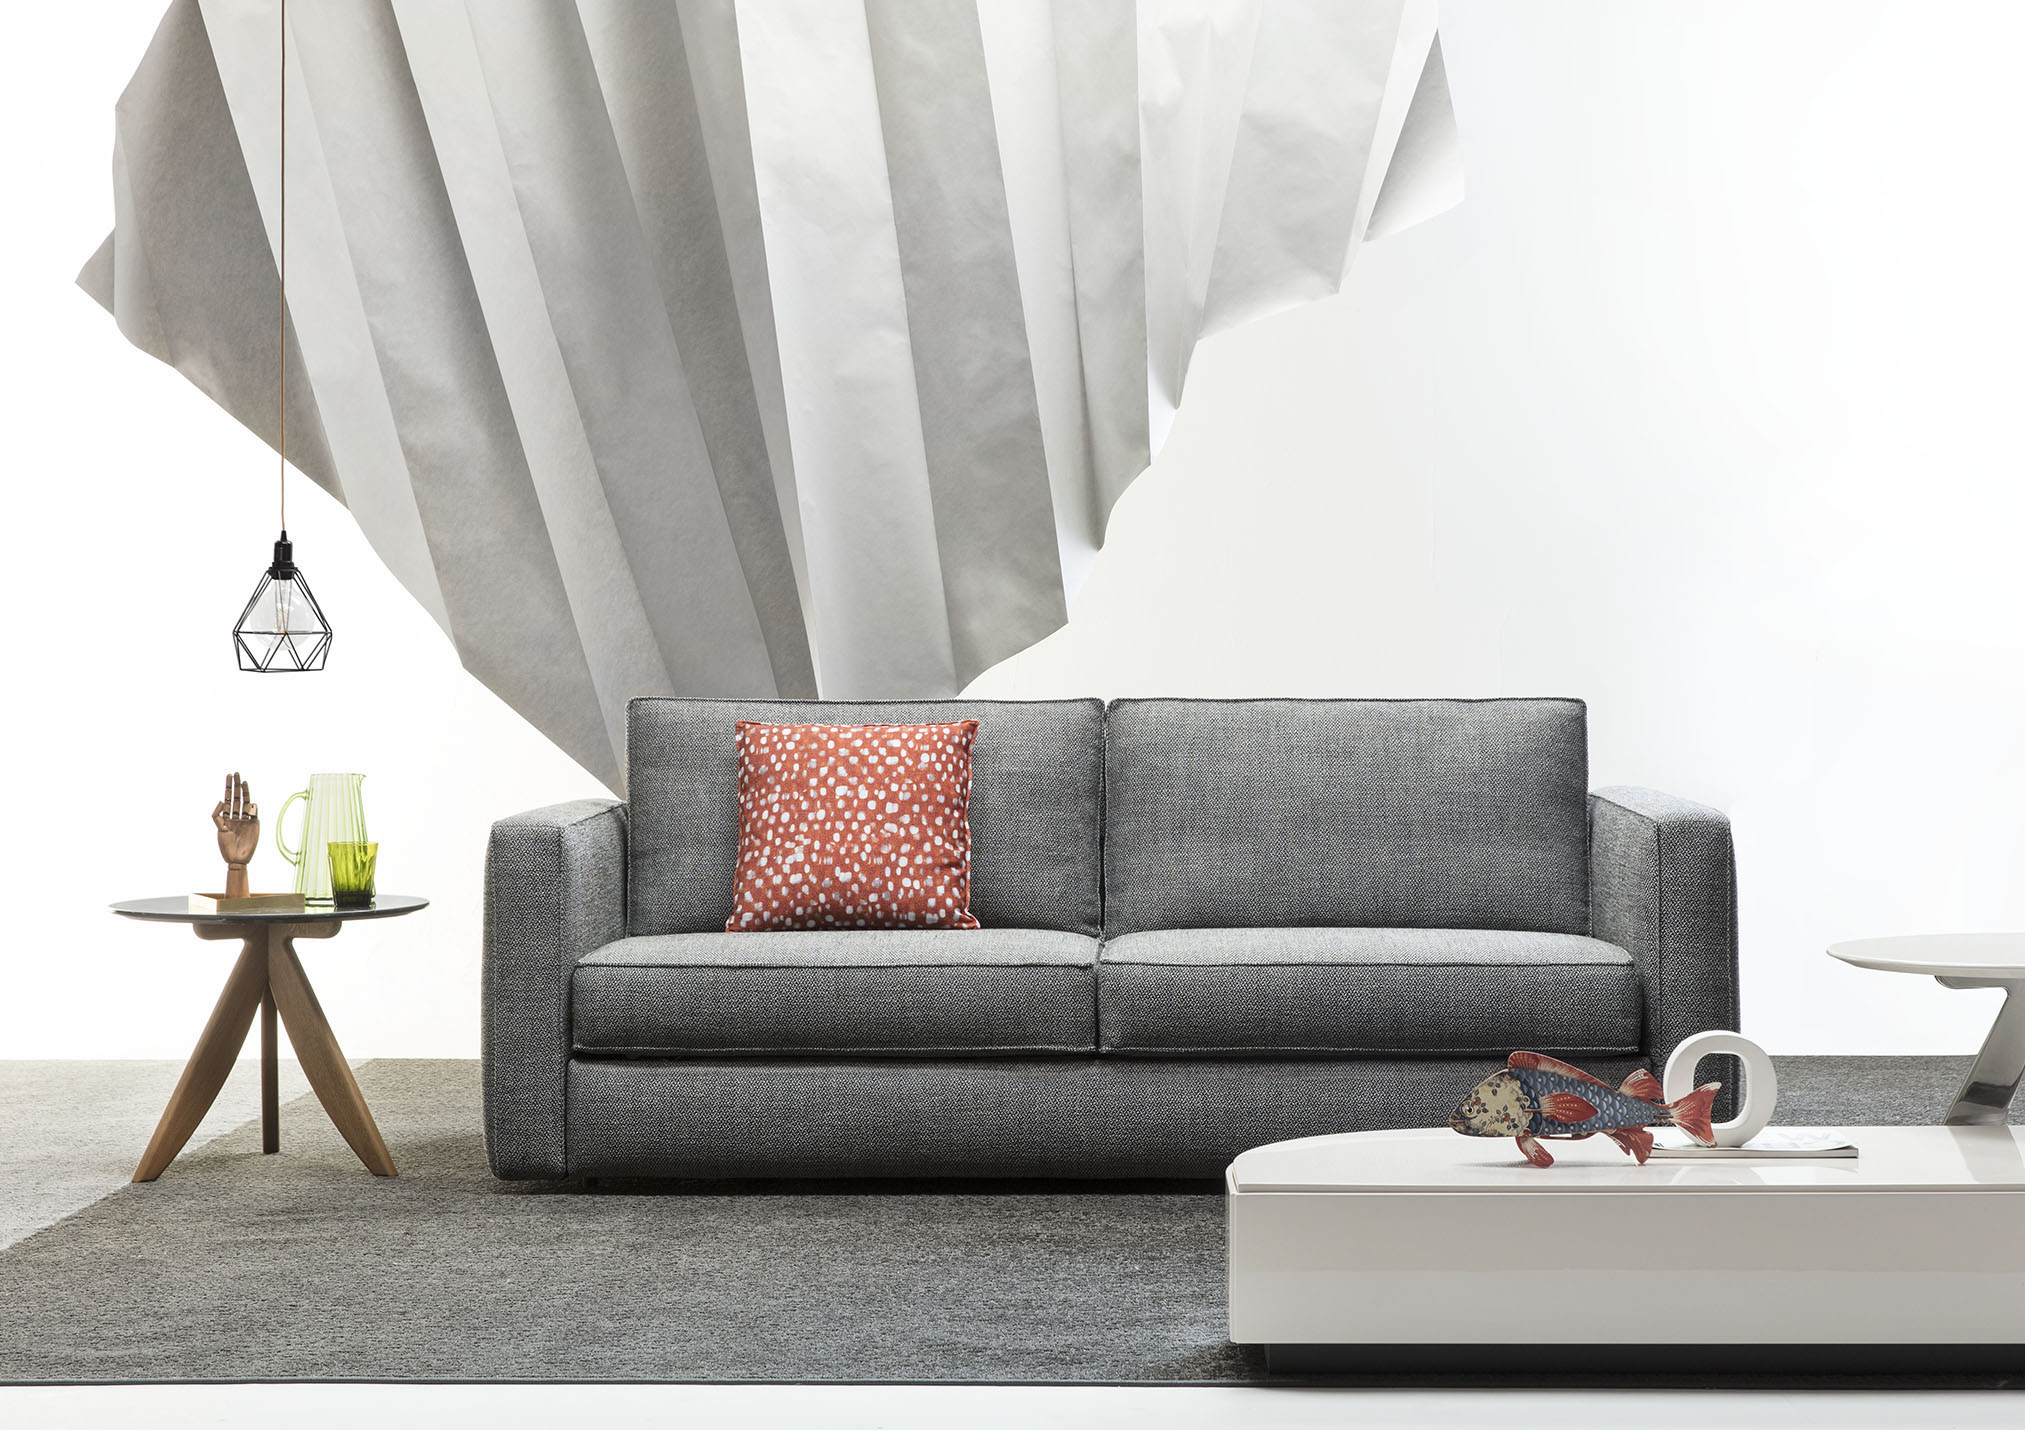 Gulliver sofa bed made by BertO for furnish 7 different homes ...